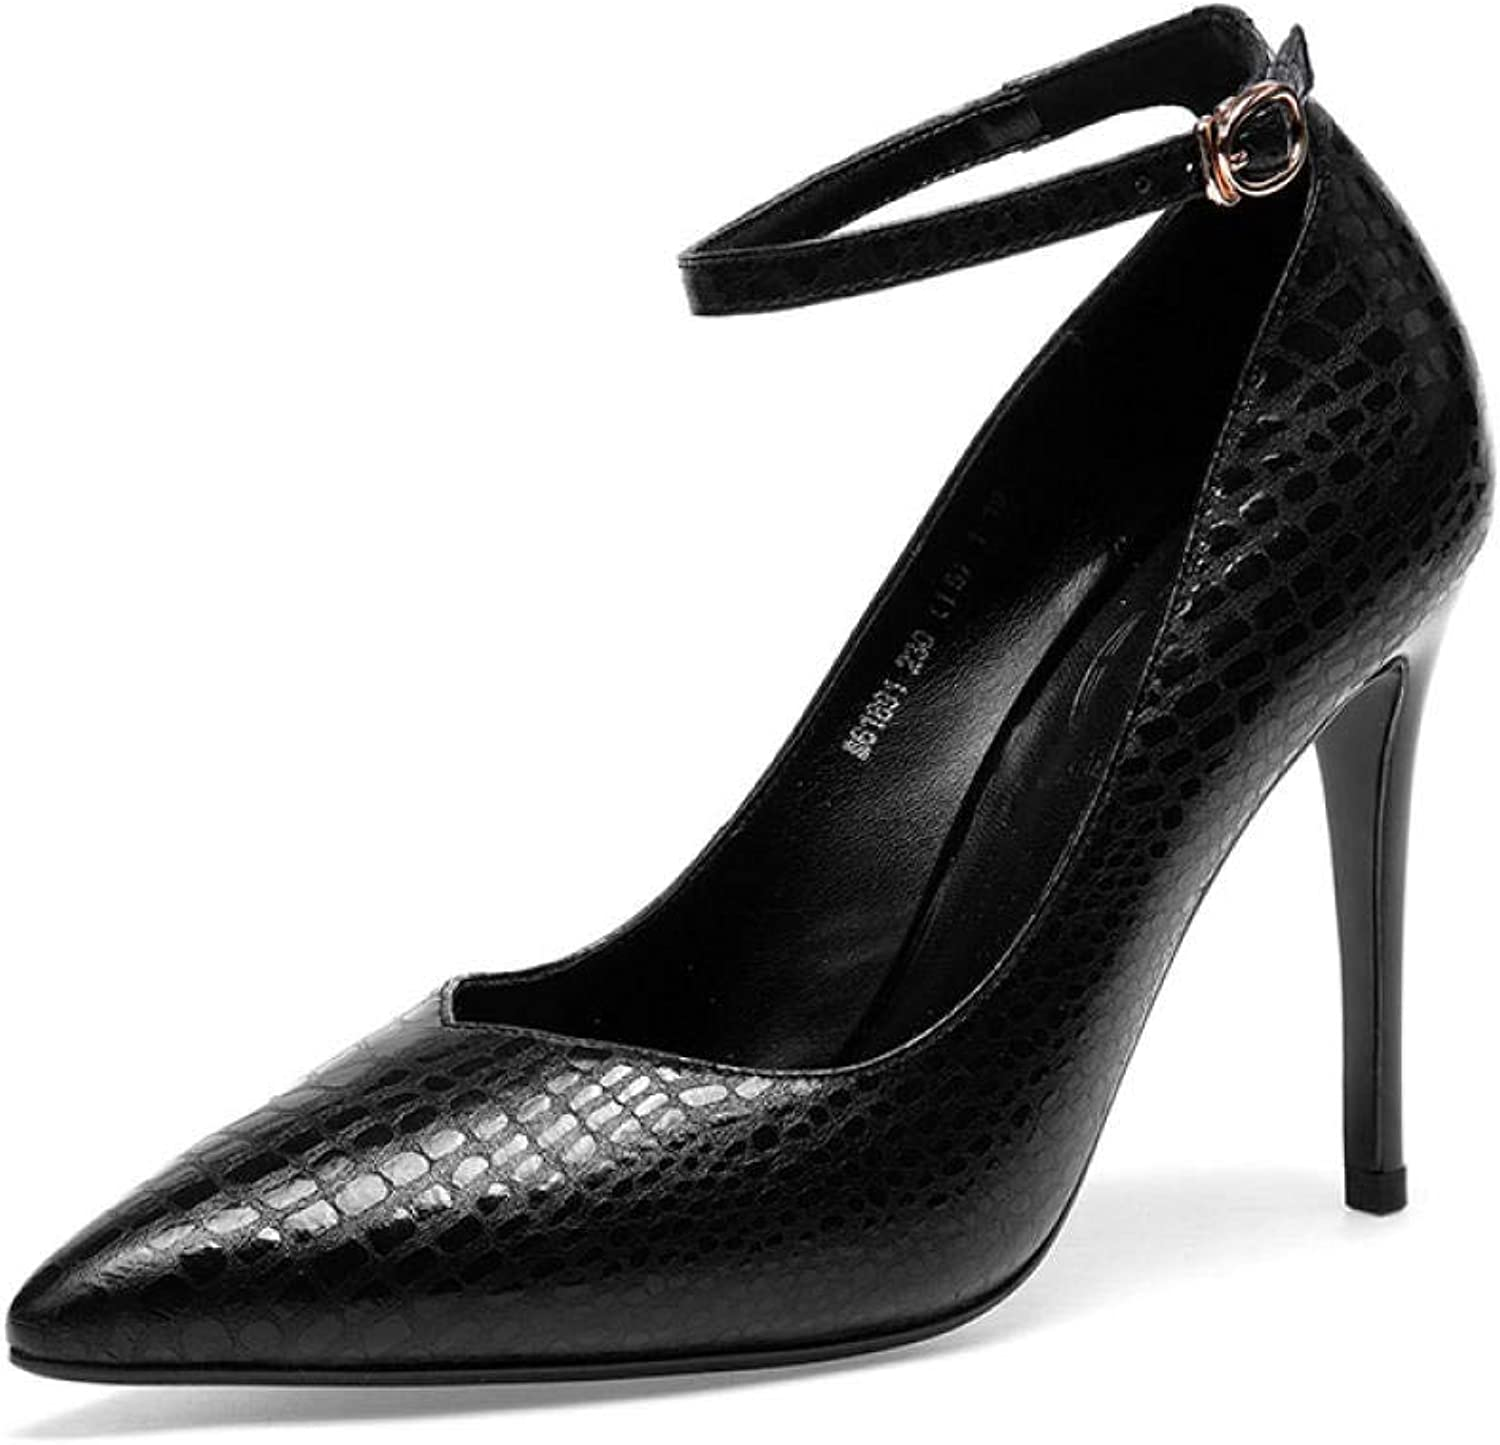 Damen High Heels Klassische Pumps Spitz sexy Schlangenleder Damen Pumps Pumps  authentisch